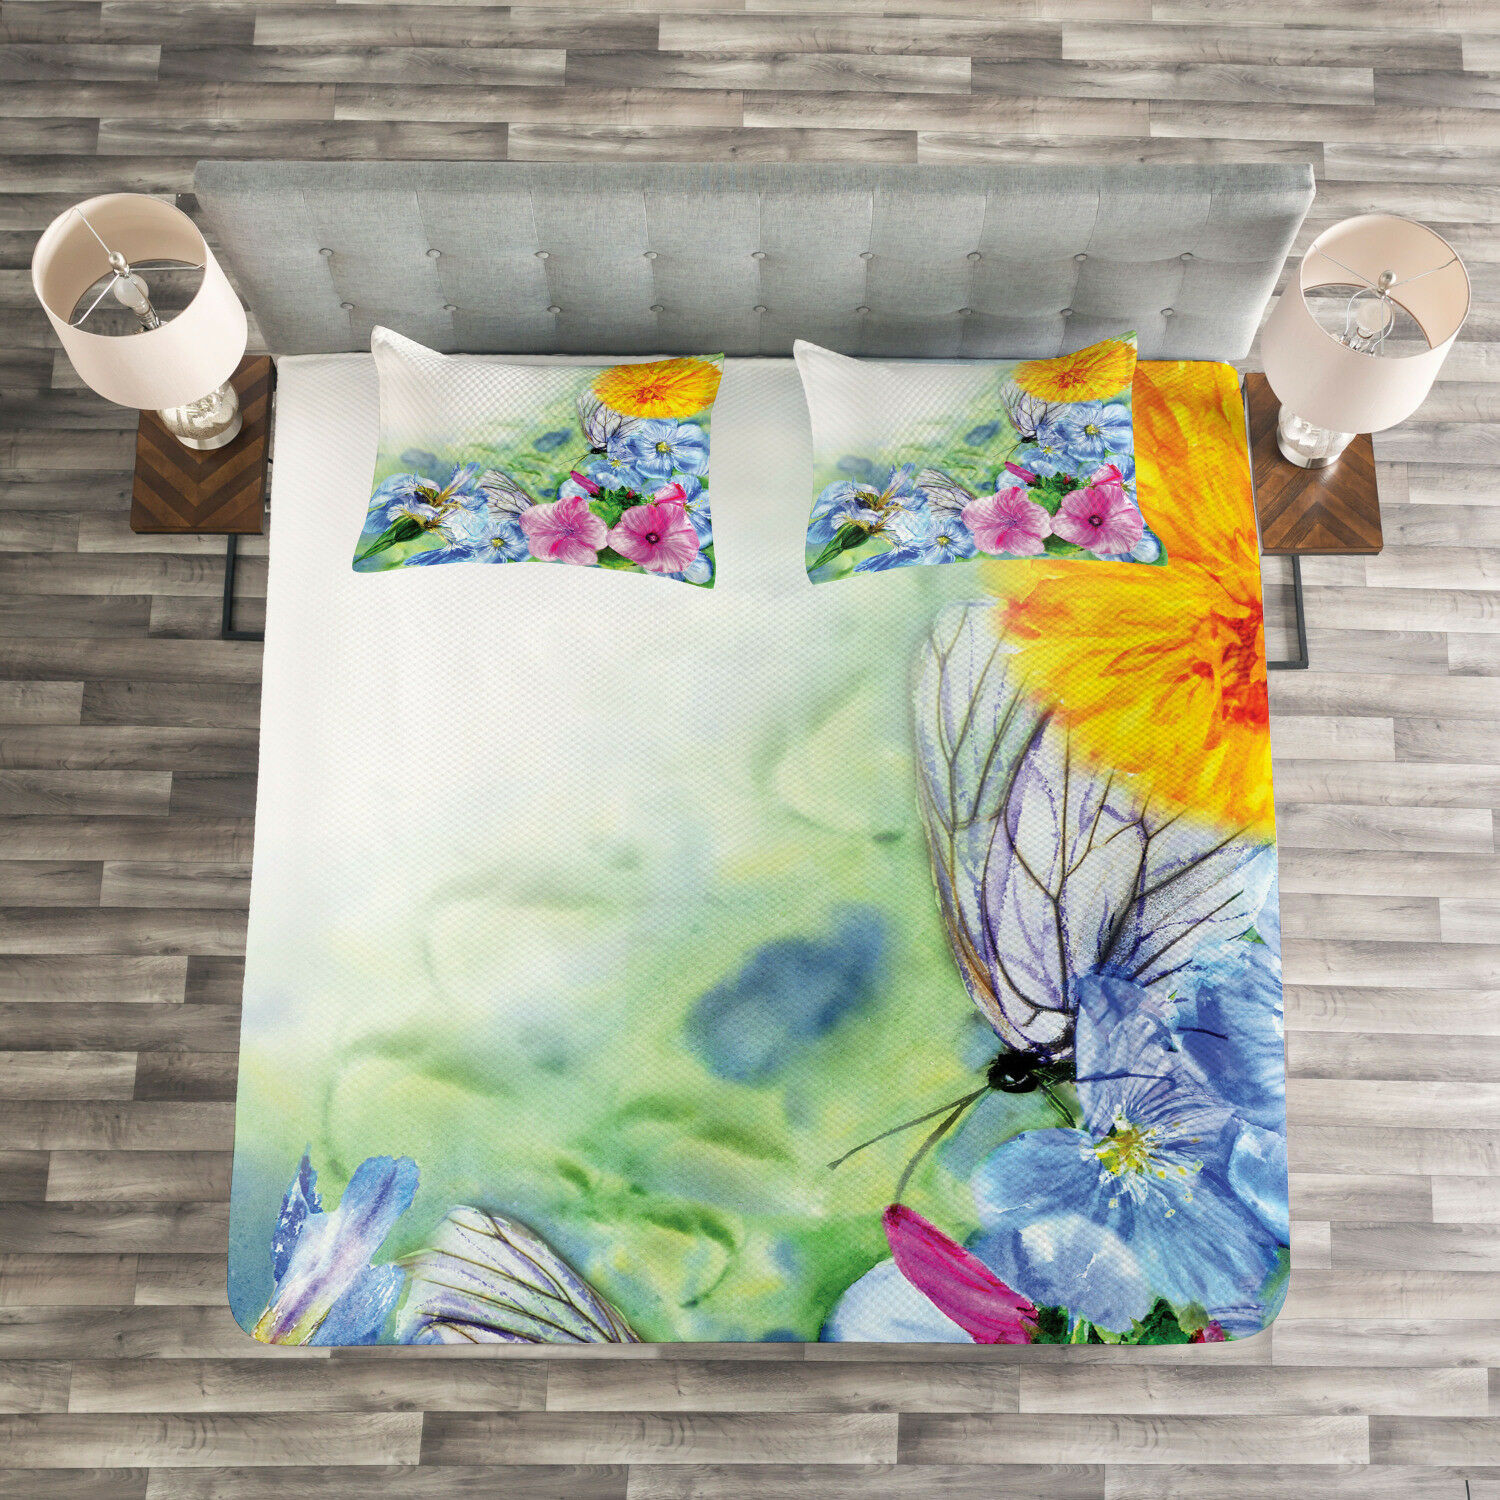 Floral Quilted Bedspread & Pillow Shams Set, Spring Blossom Print